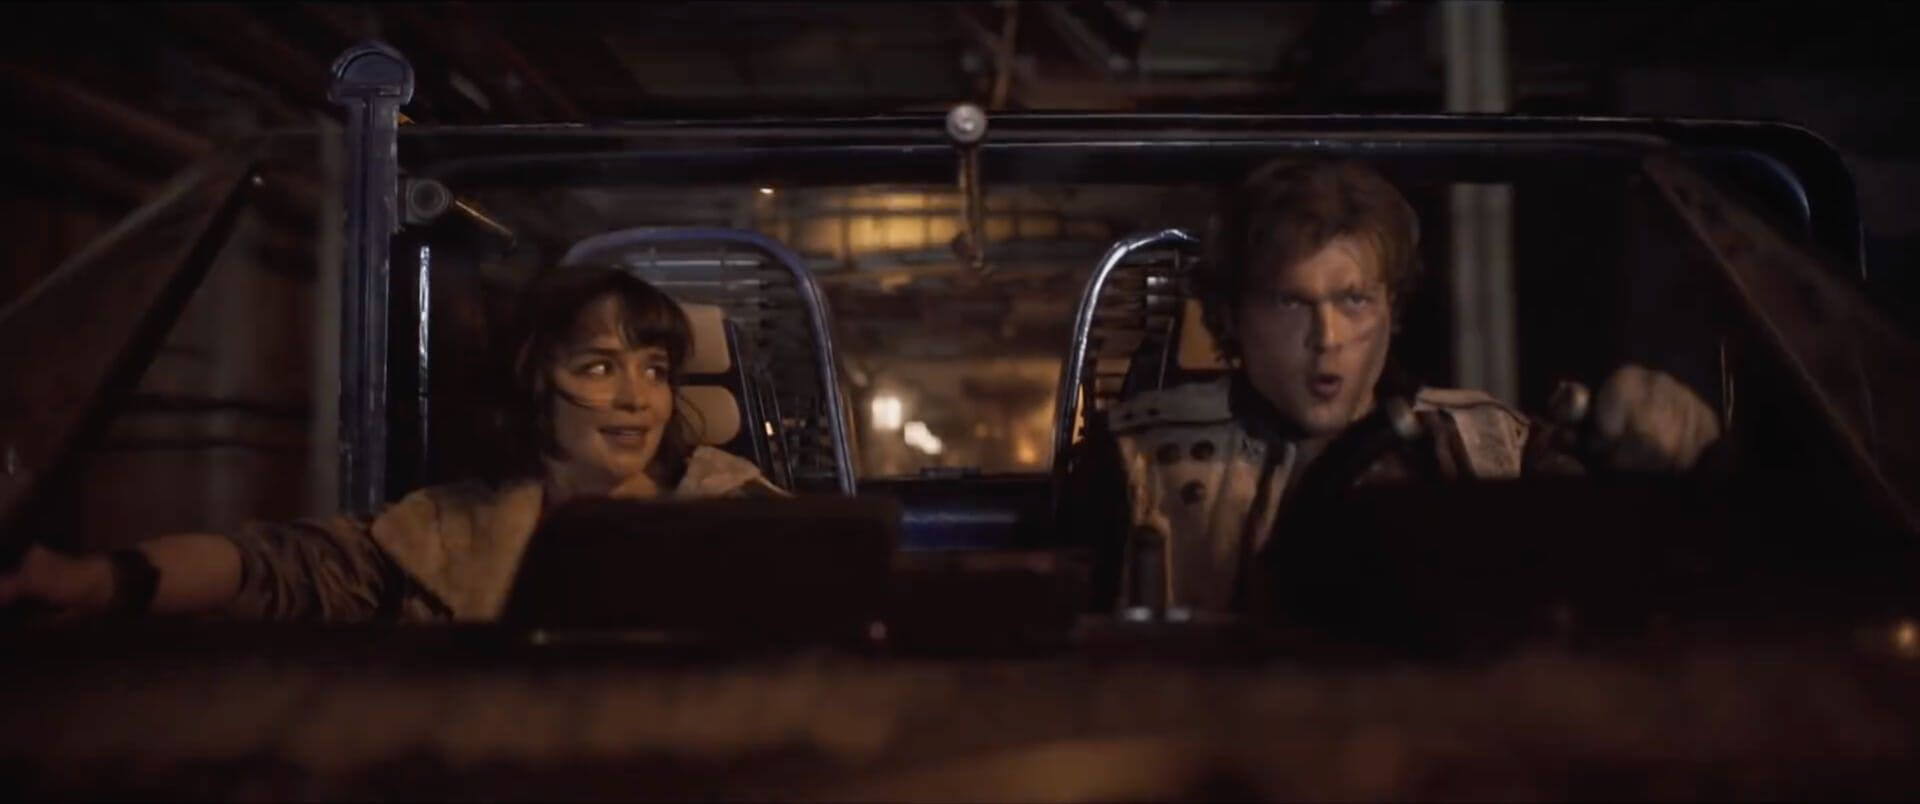 Solo - Han Solo and Qi'ra star wars movies